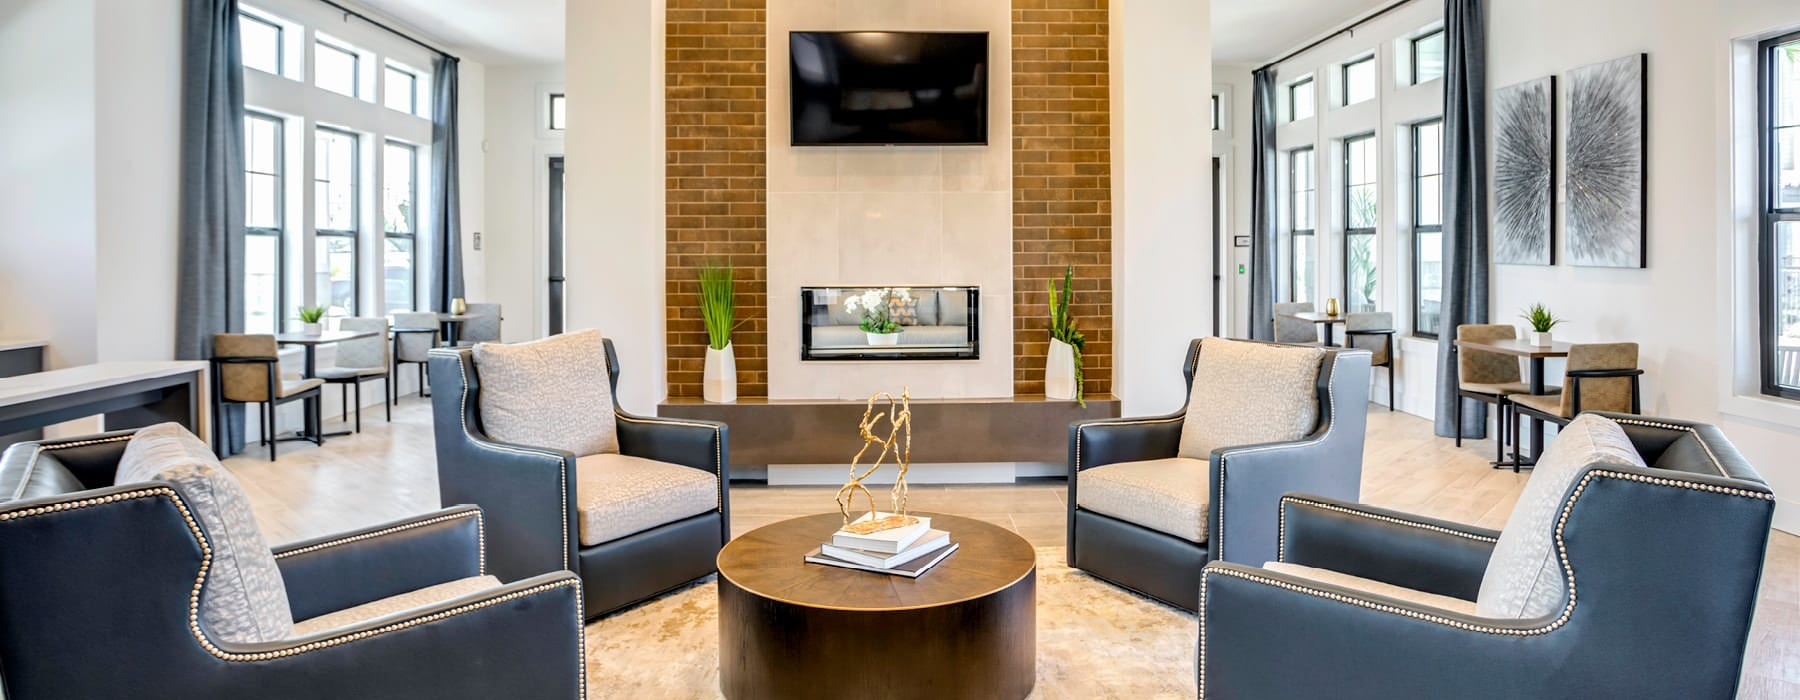 bright community clubhouse lounge area with wall mounted tv